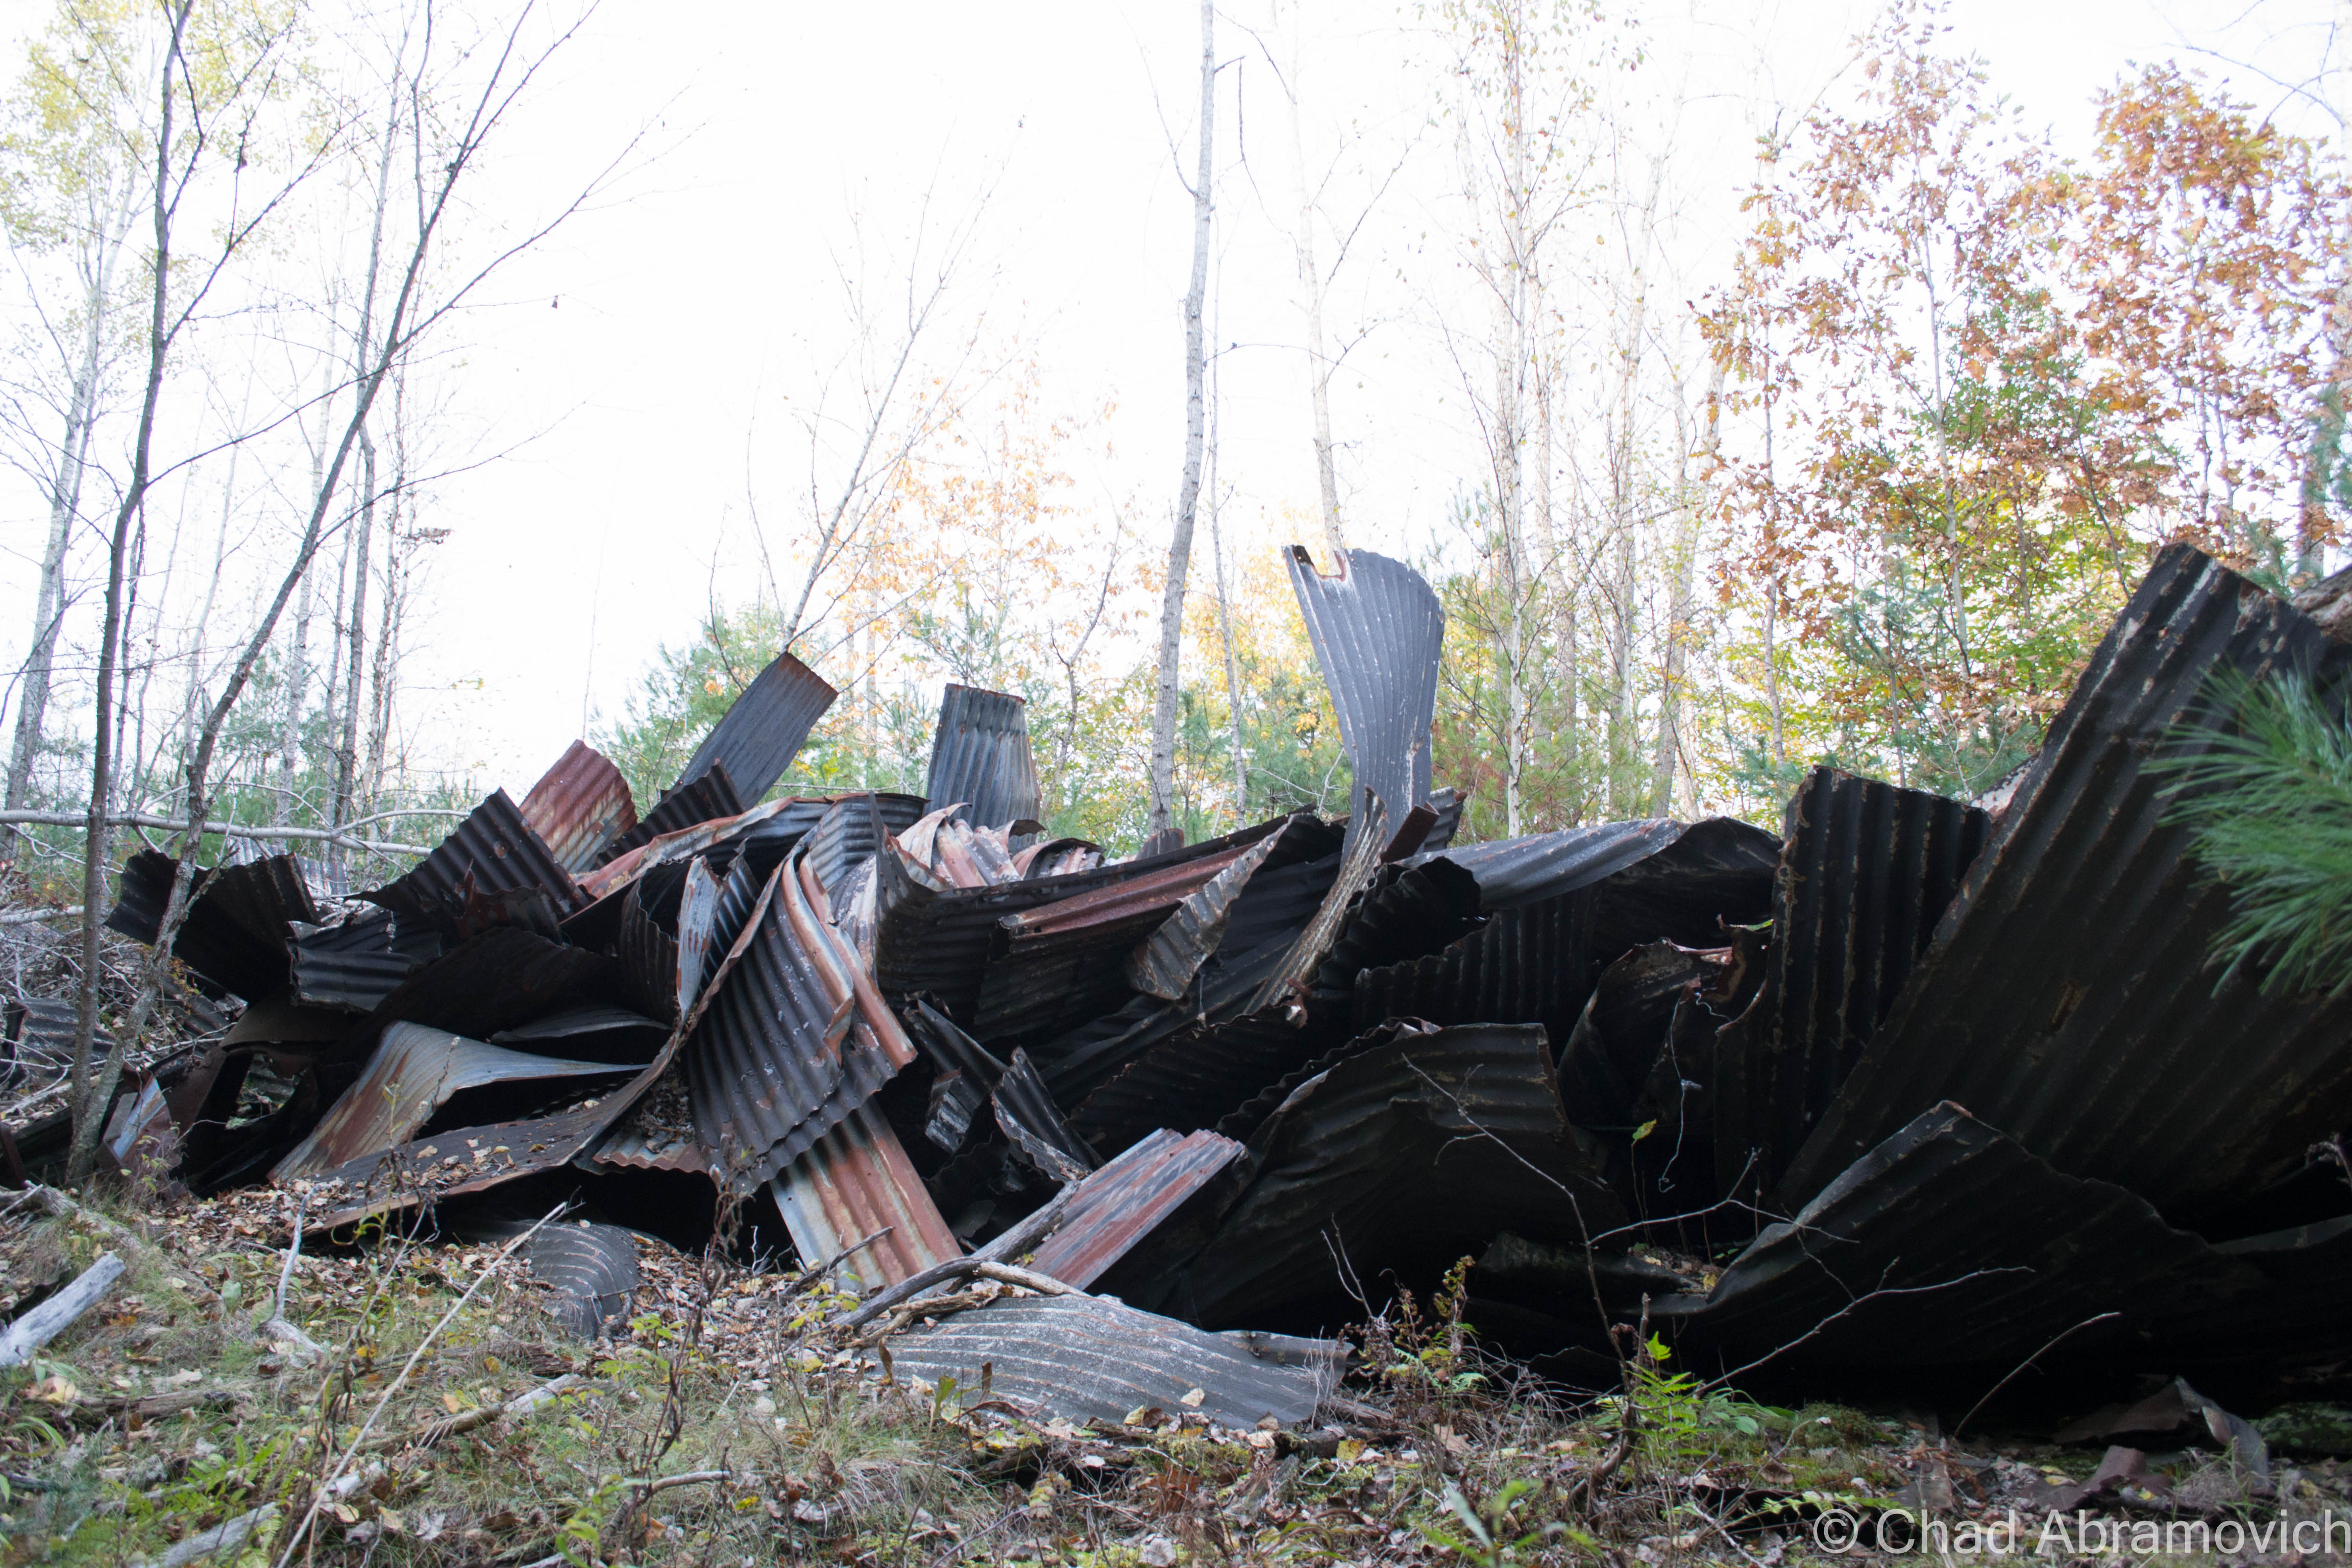 Just ahead was another interesting find – a large pile of discarded twisted scrap tin was left littering the side of the trail, stretching ahead of us for an impressive distance.